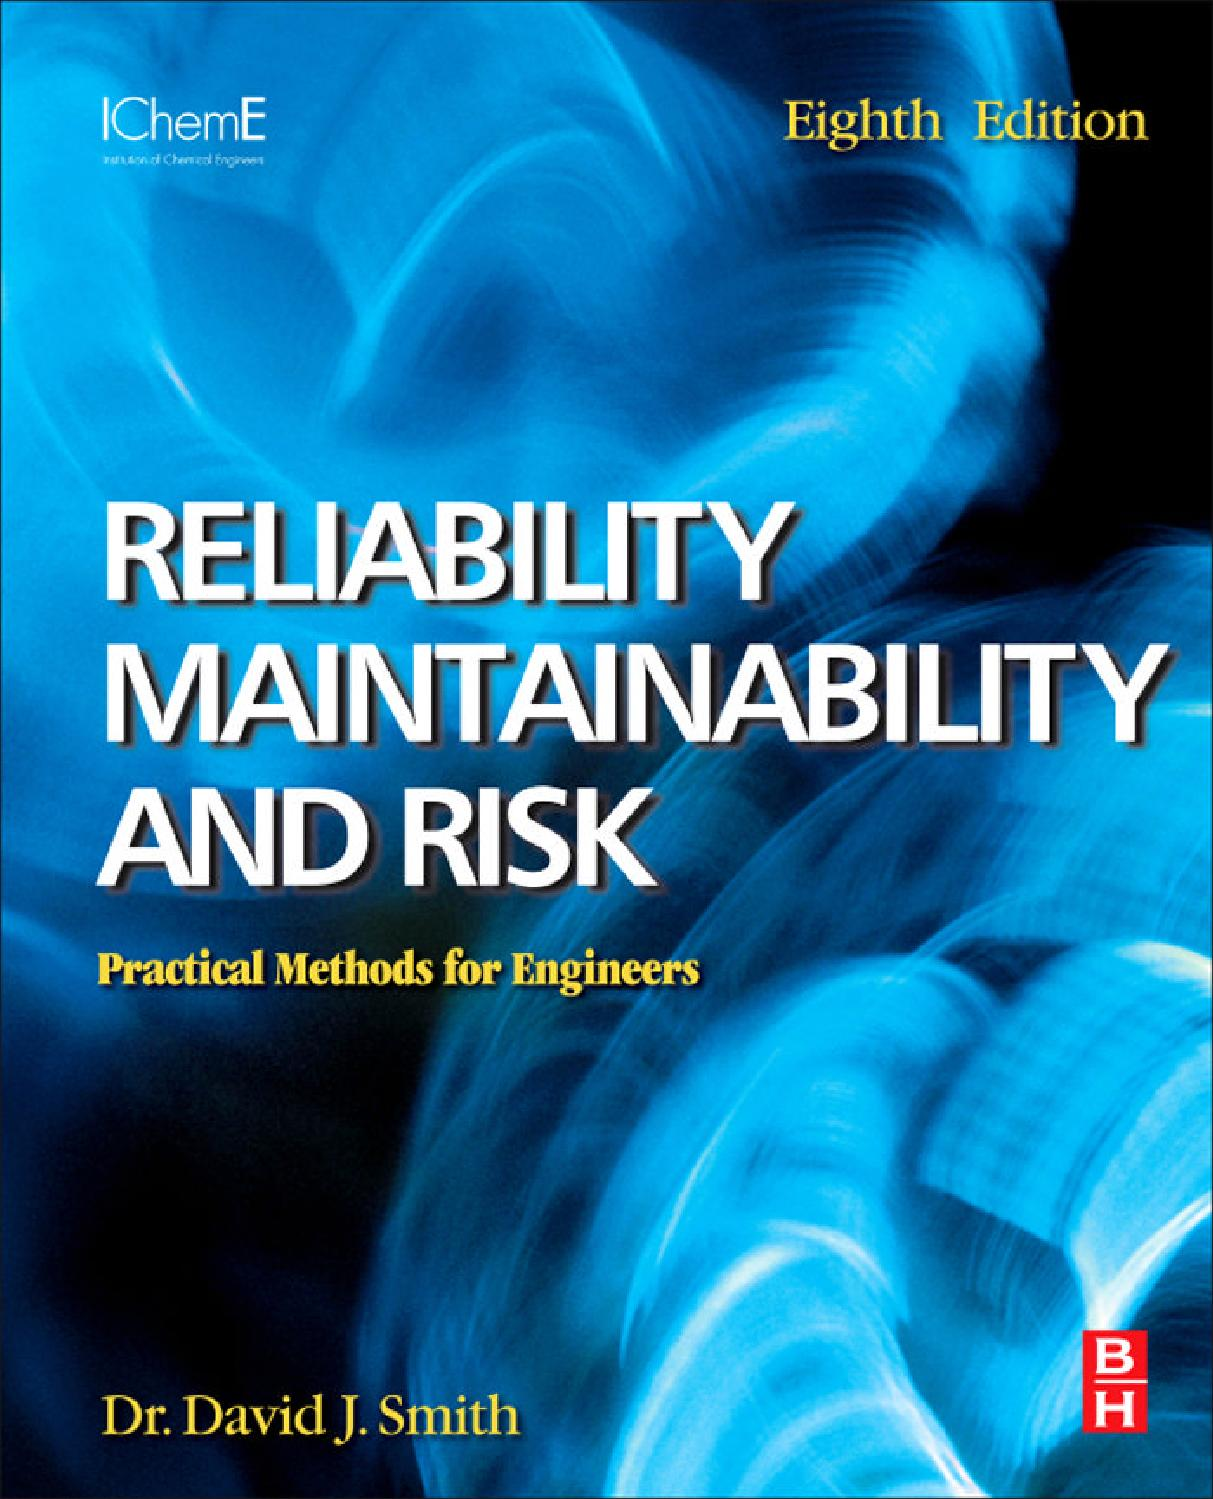 Reliability, maintainability and risk pract meths for engineers 8th ...